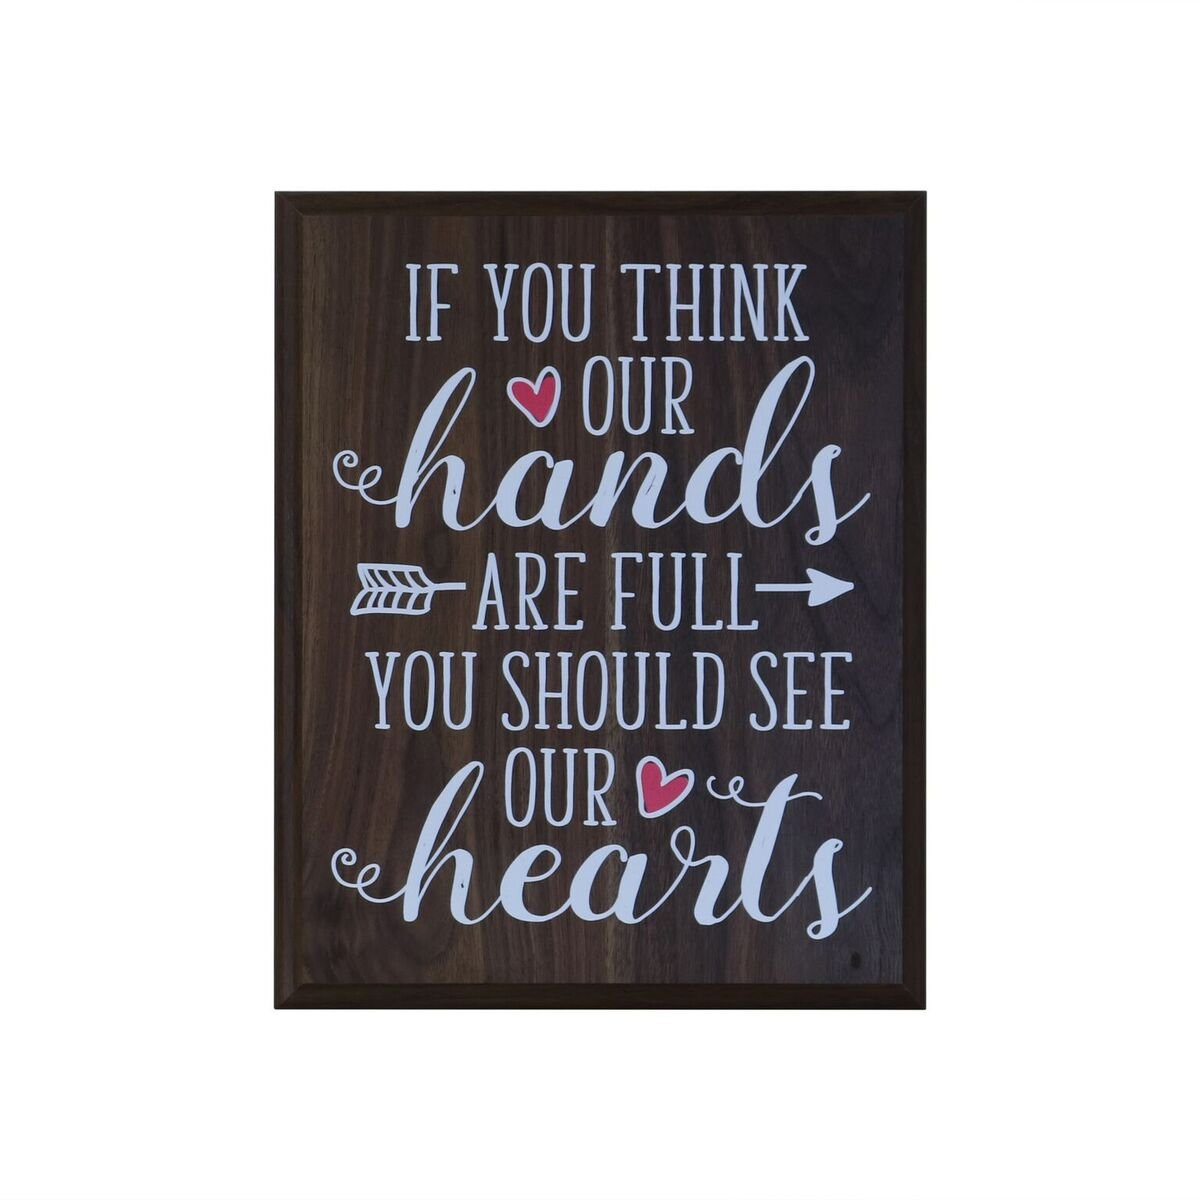 Full Hands And Hearts Gifts For Mom Husband Wife Parents Best Friend Christian Gift Ideas Birthday 12 Inches Wide X 15 High Wall